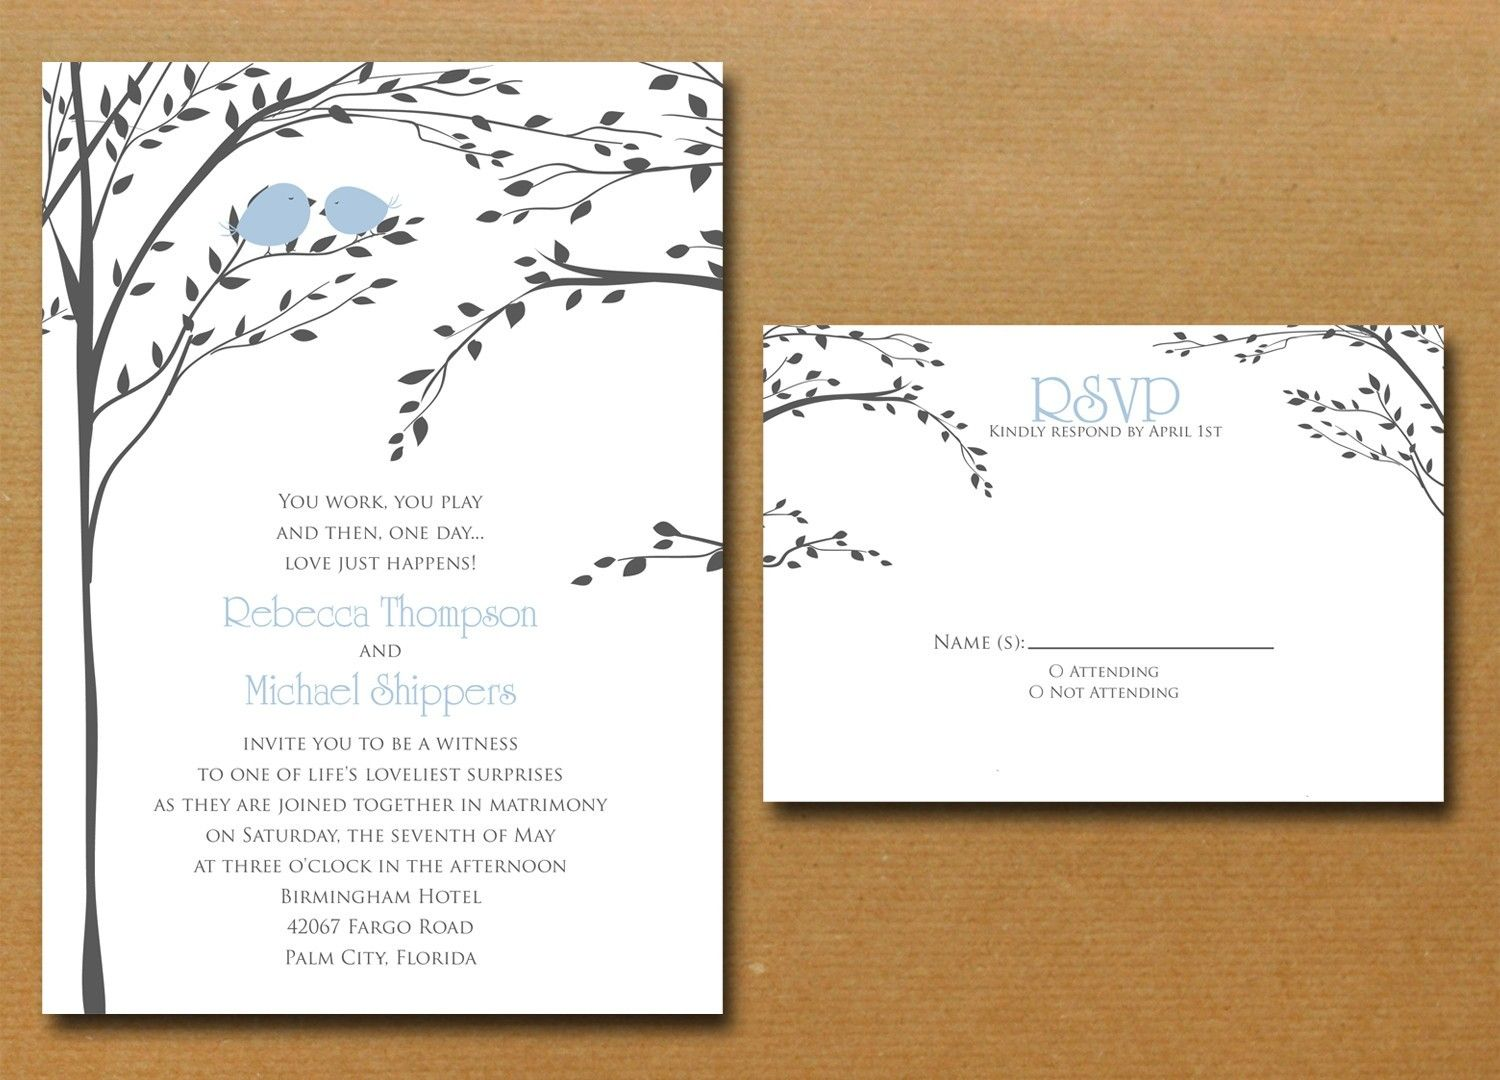 Merveilleux Love Birds In A Tree Wedding Invitation By Nmiphotocreations, $3.00